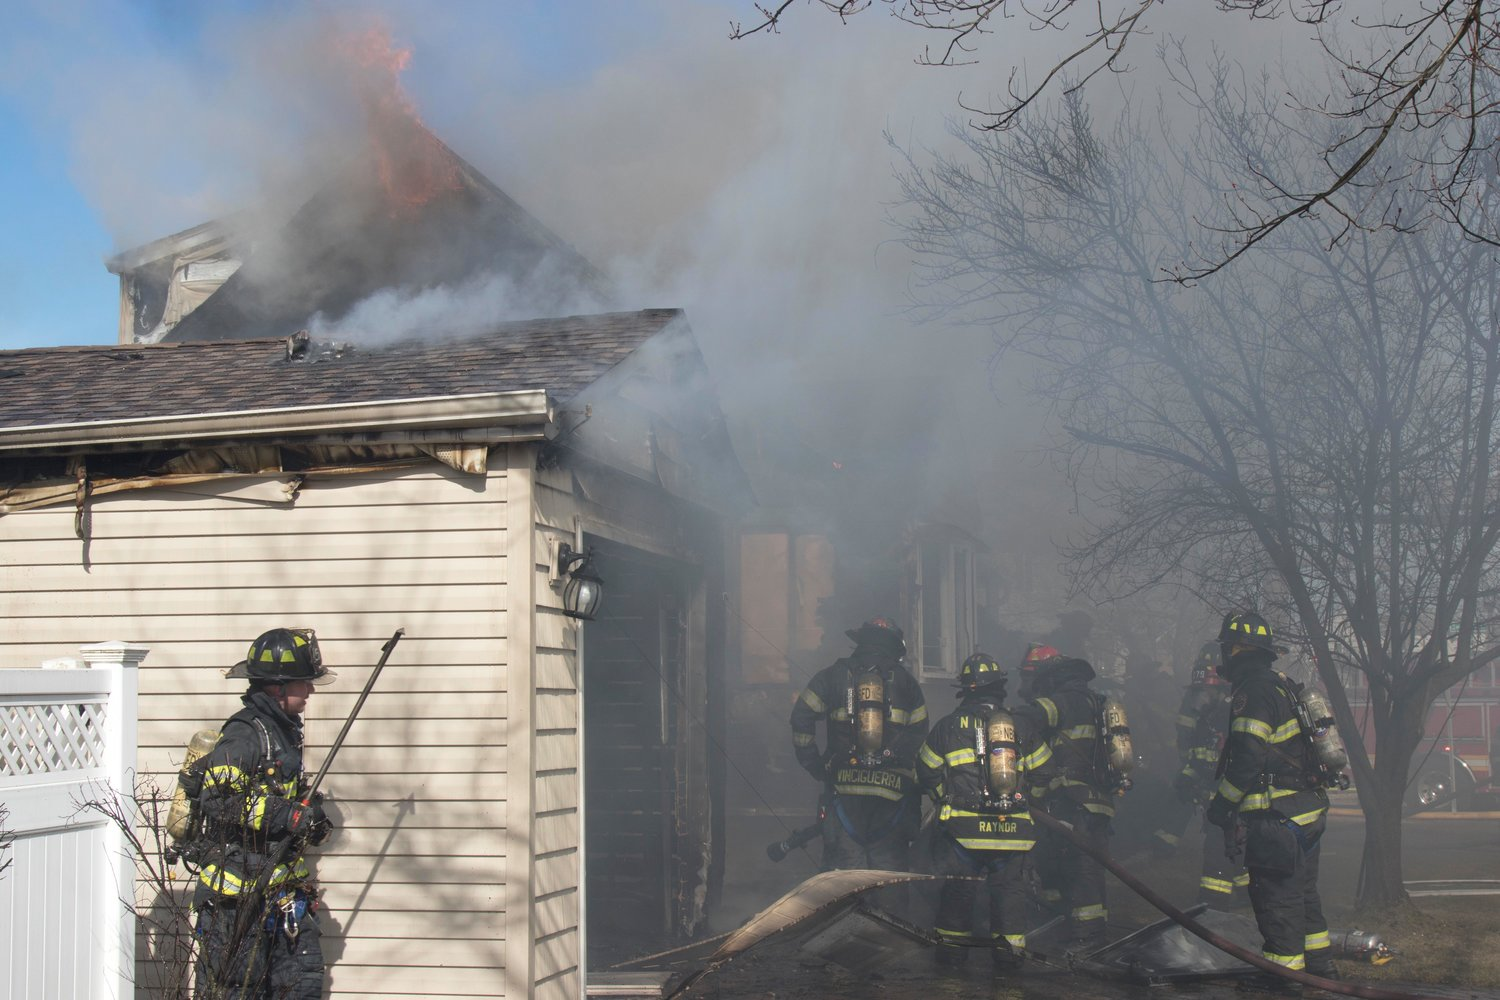 Bazarewski, along with her father and brother, helped extinguish an East Meadow house fire last month, sparing much of the home from destruction.